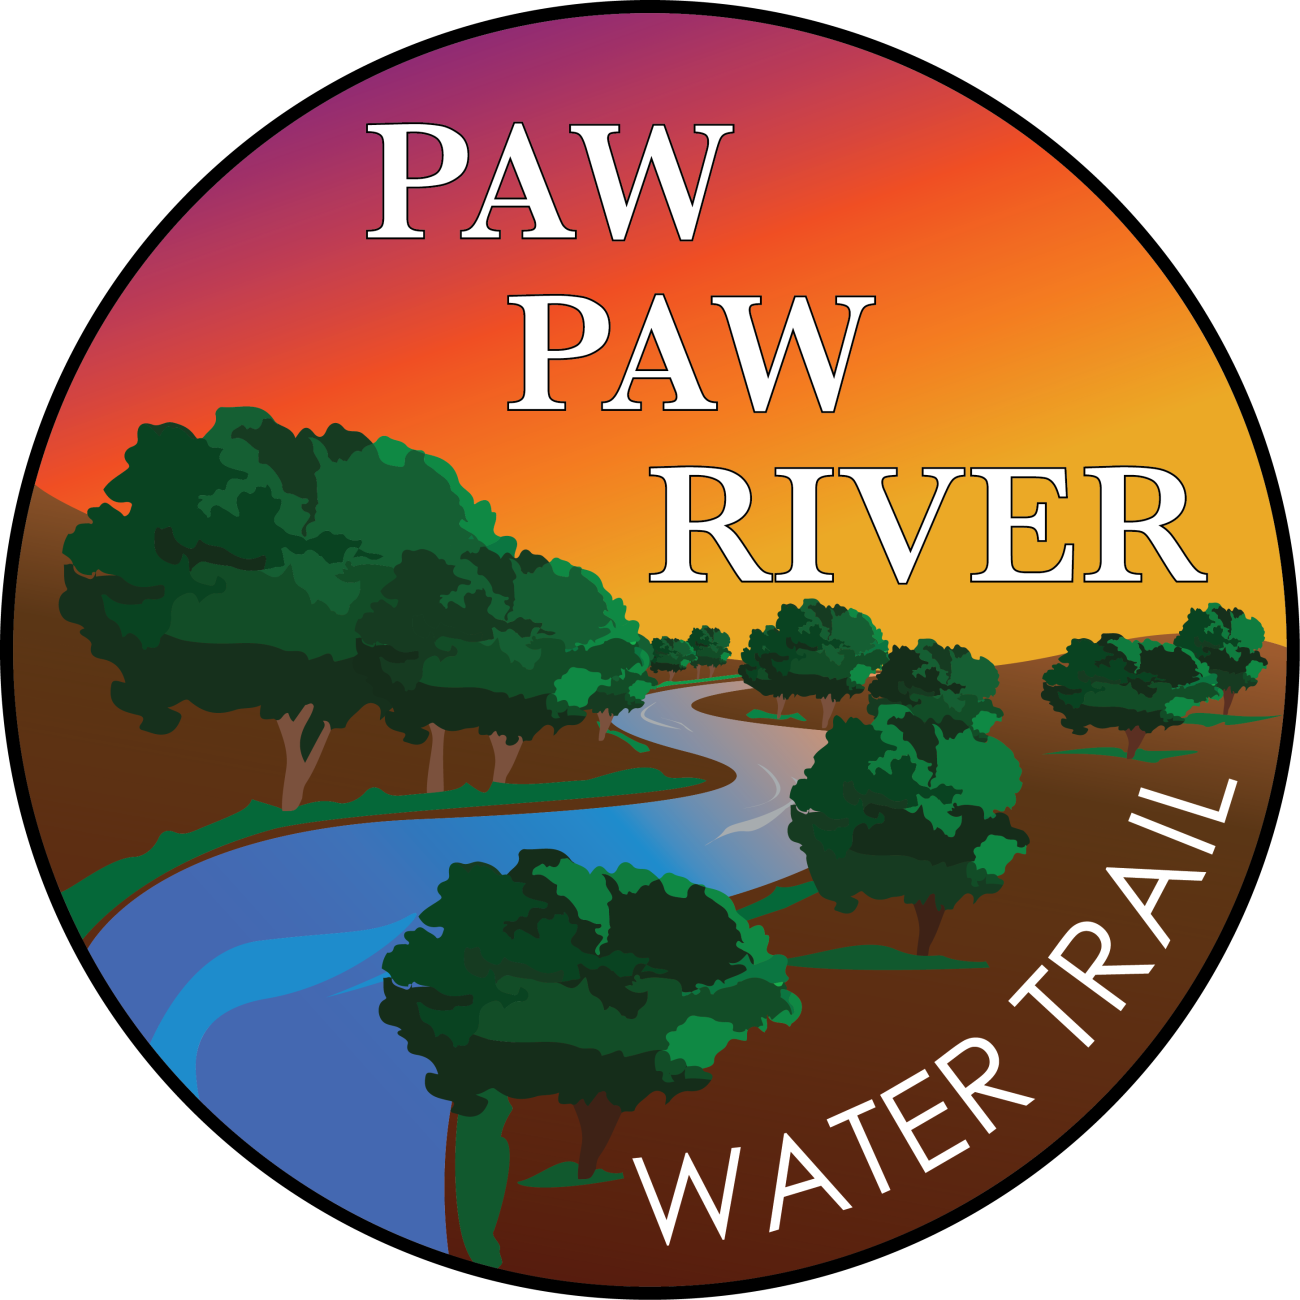 Paw Paw River Water Trail